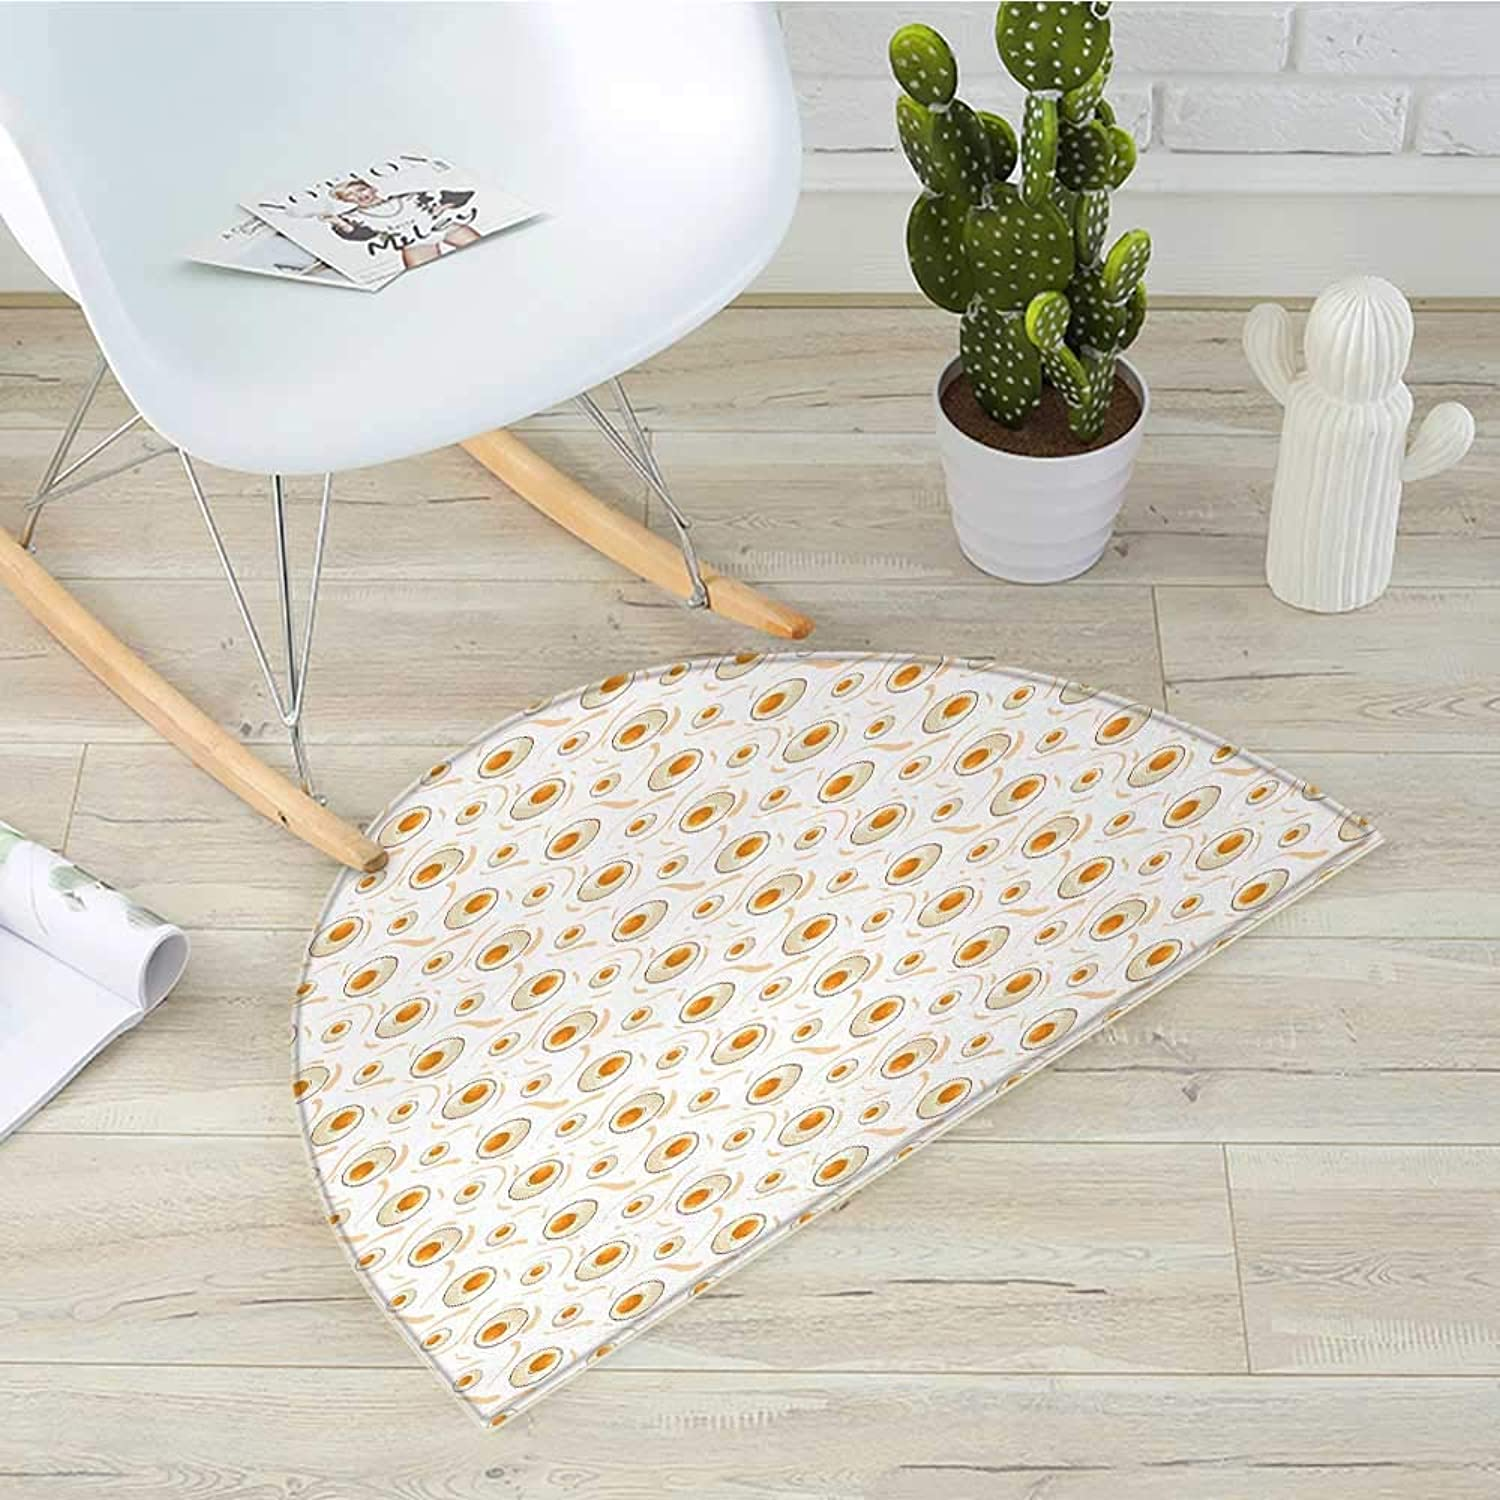 Egg Half Round Door mats Breakfast Food Pattern with Fried Eggs Healthy Predein Omelets Morning Meal Bathroom Mat H 31.5  xD 47.2  Marigold Peach Cream